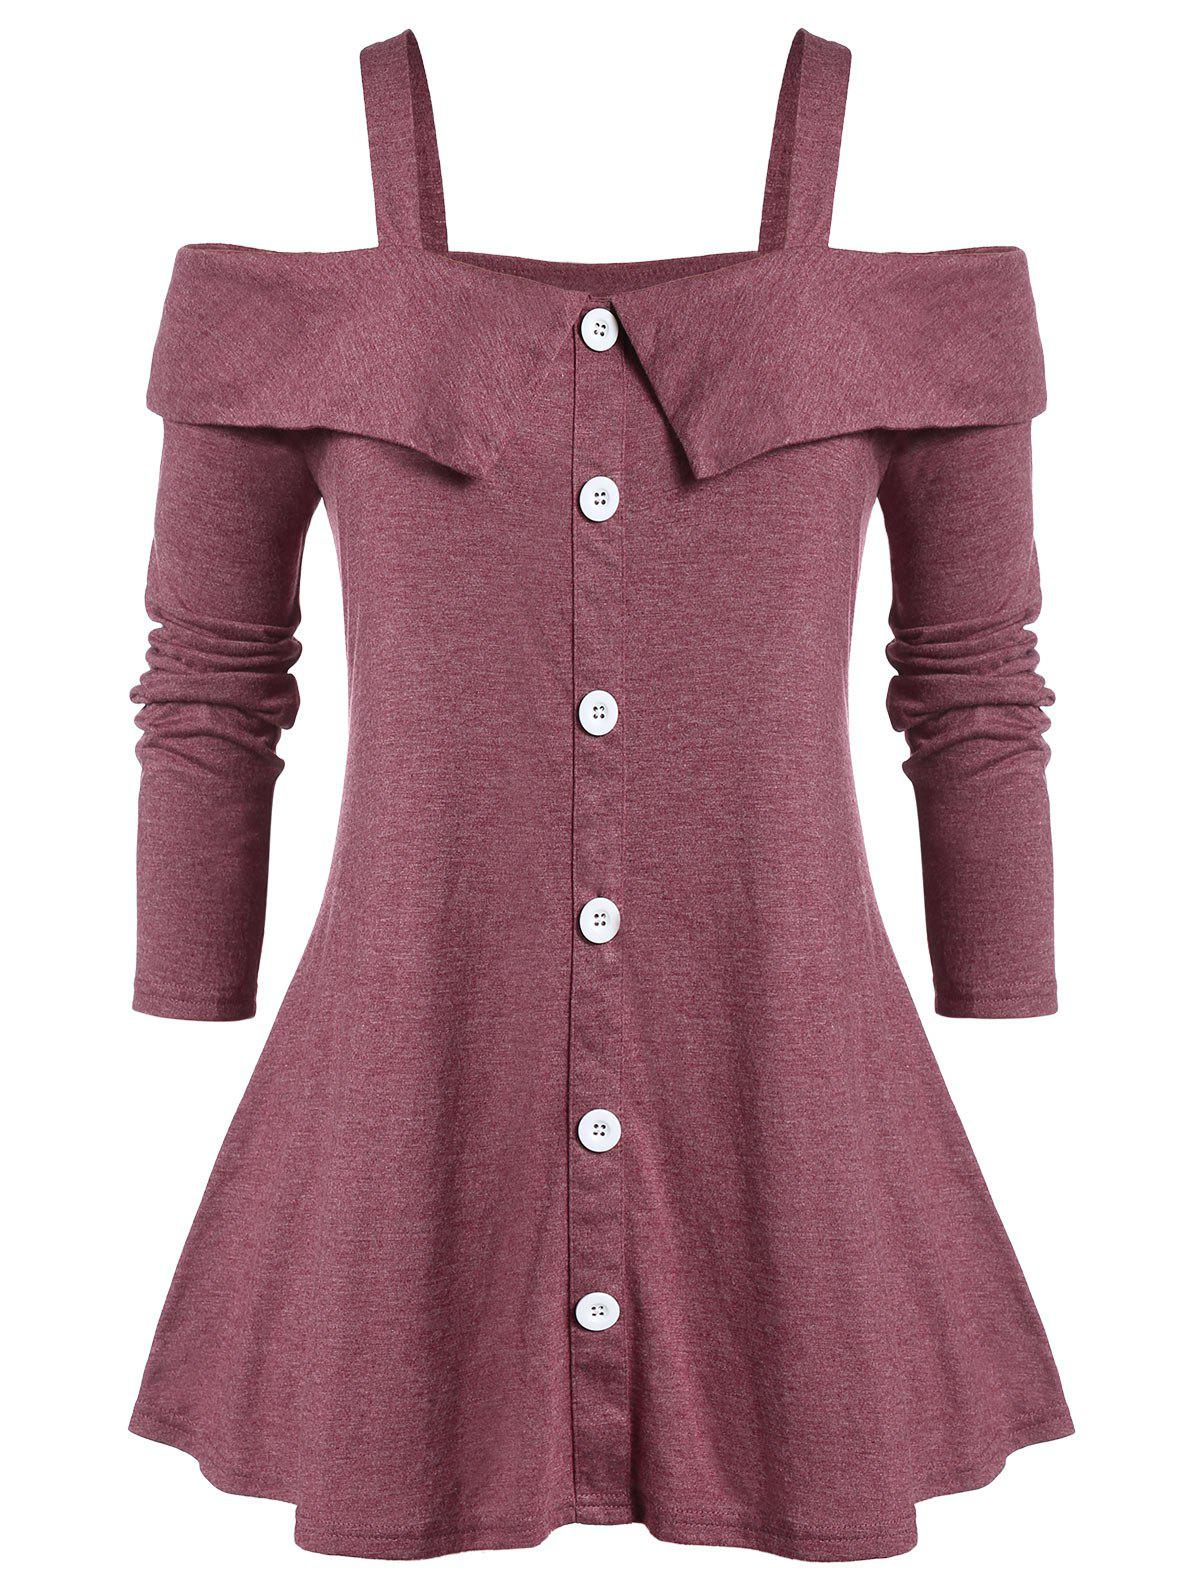 Plus Size Square Neck Marled Open Shoulder T Shirt - CHERRY RED 5X